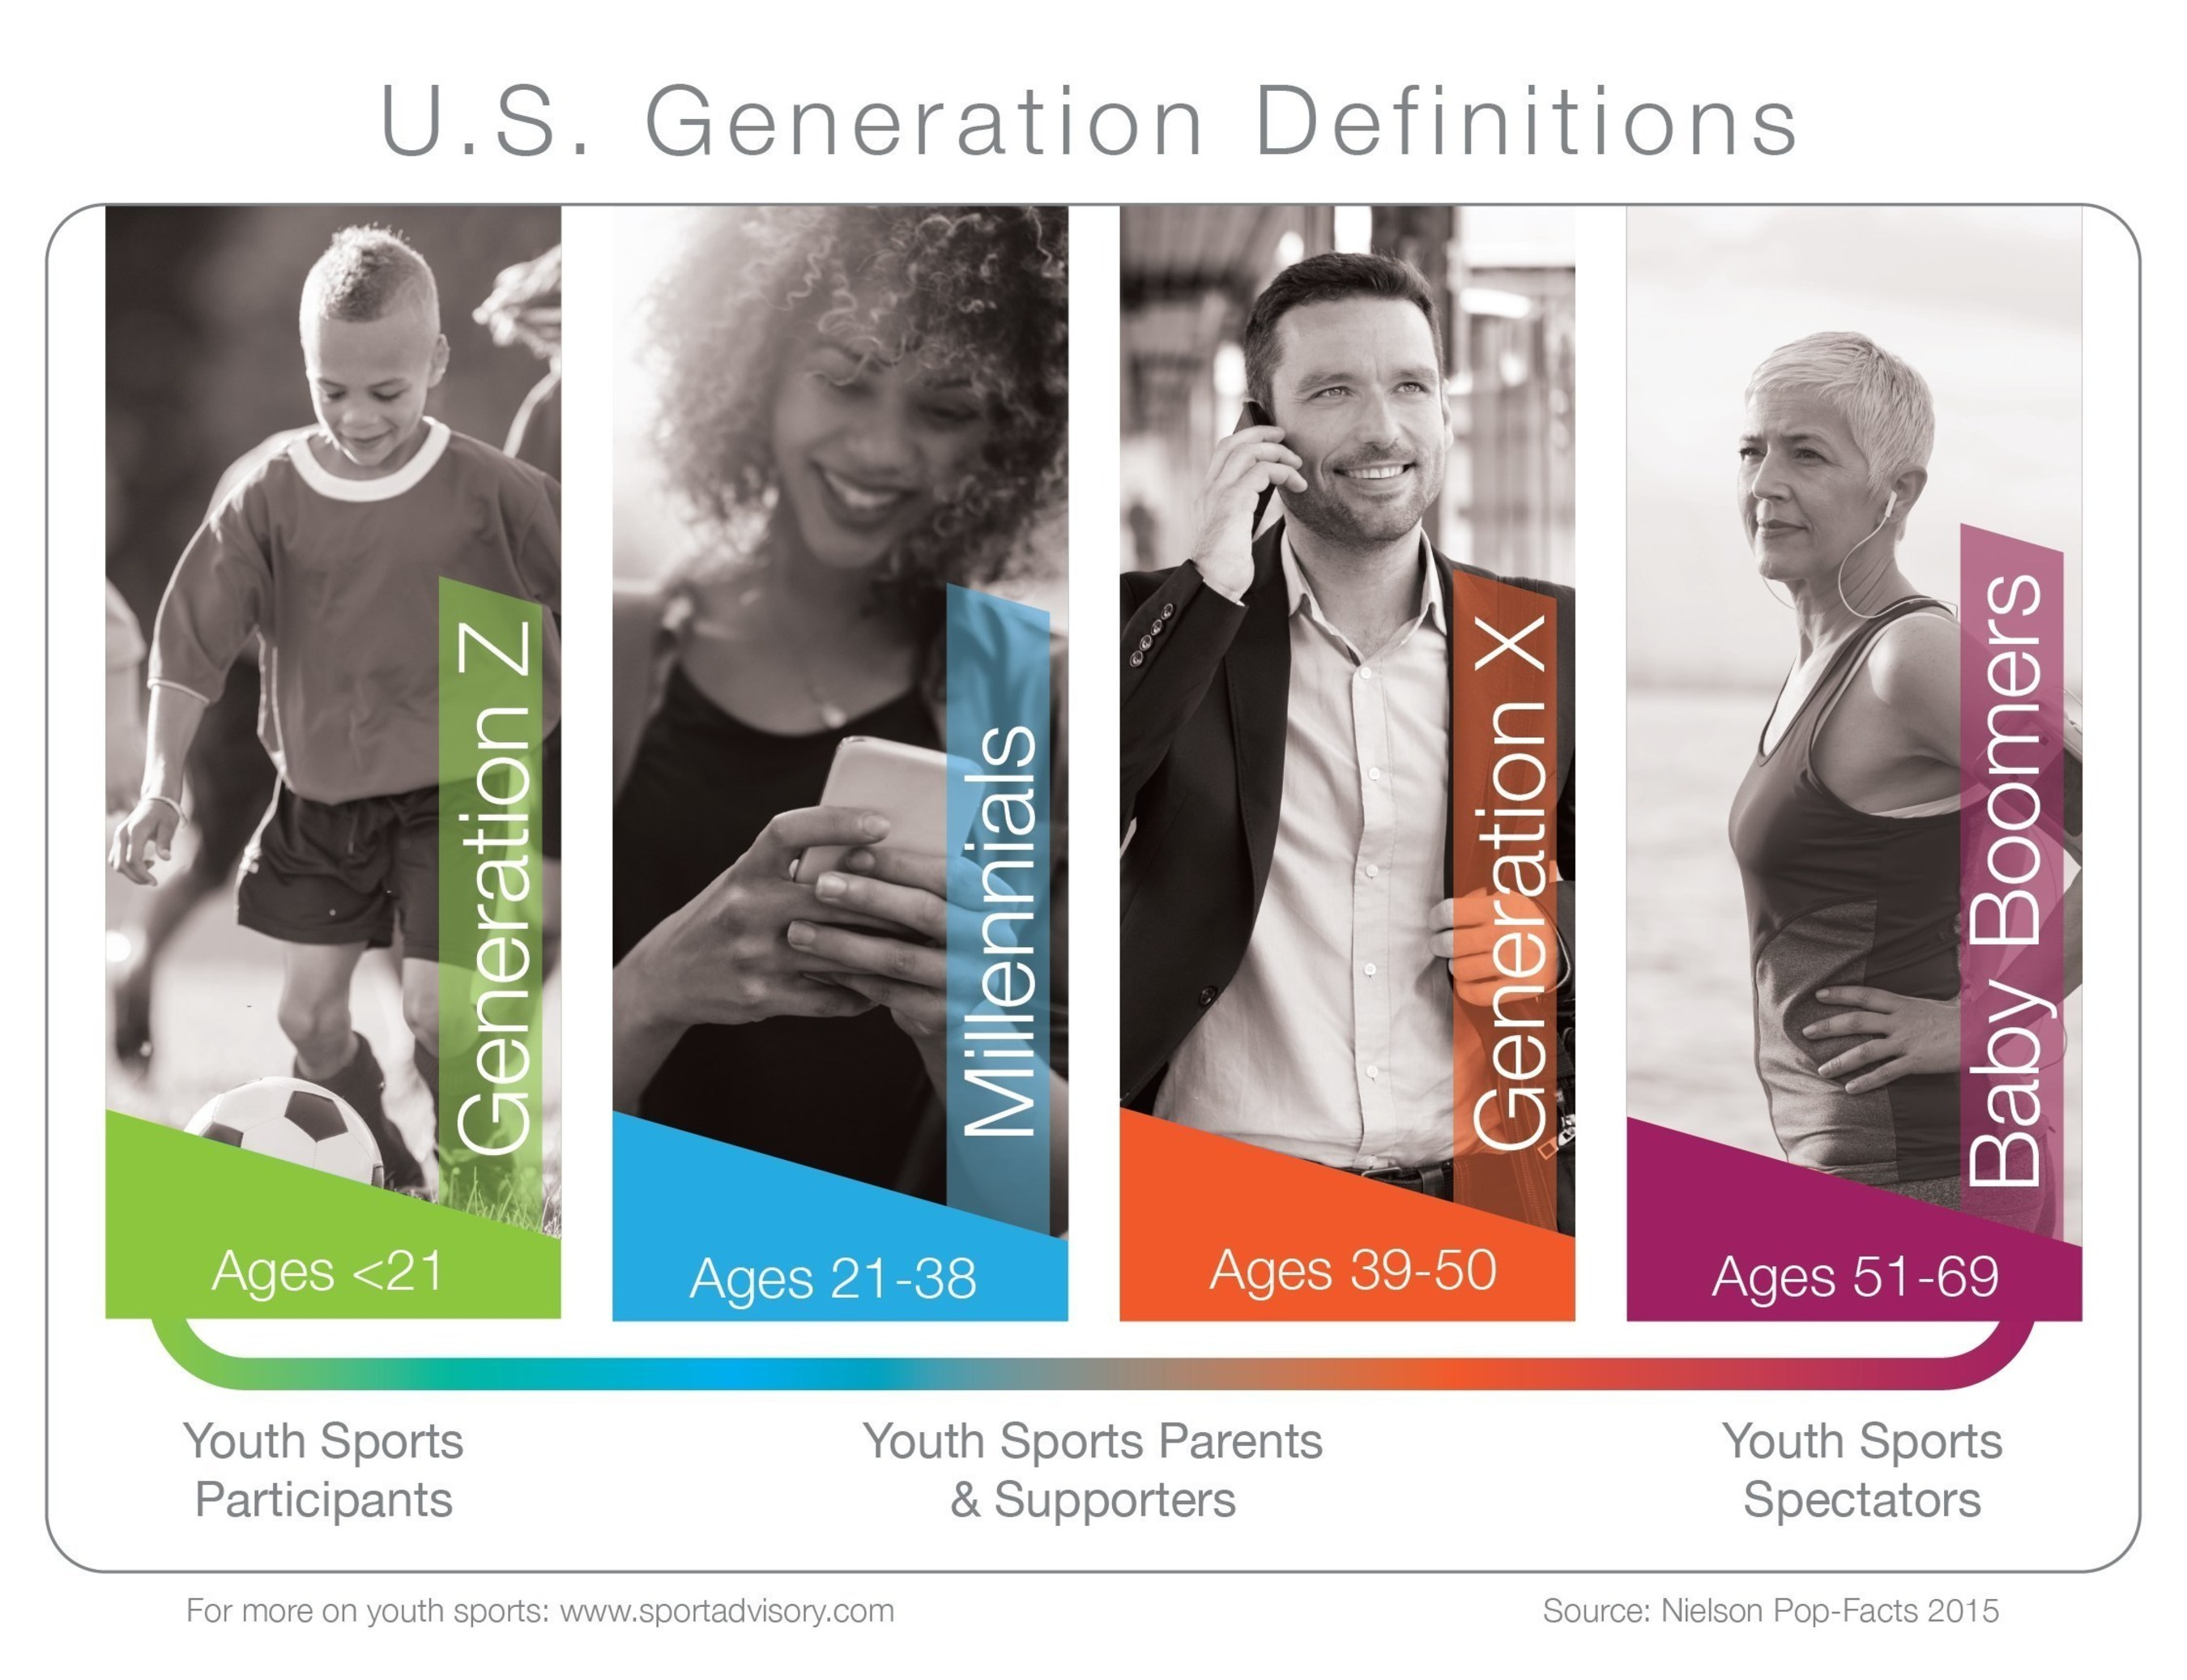 U.S. Generation Definitions, based on birth year (as defined by Nielsen); everyone has an impact in youth and amateur sports - and every generations' purchasing preferences should be considered when planning or managing a youth sports complex.